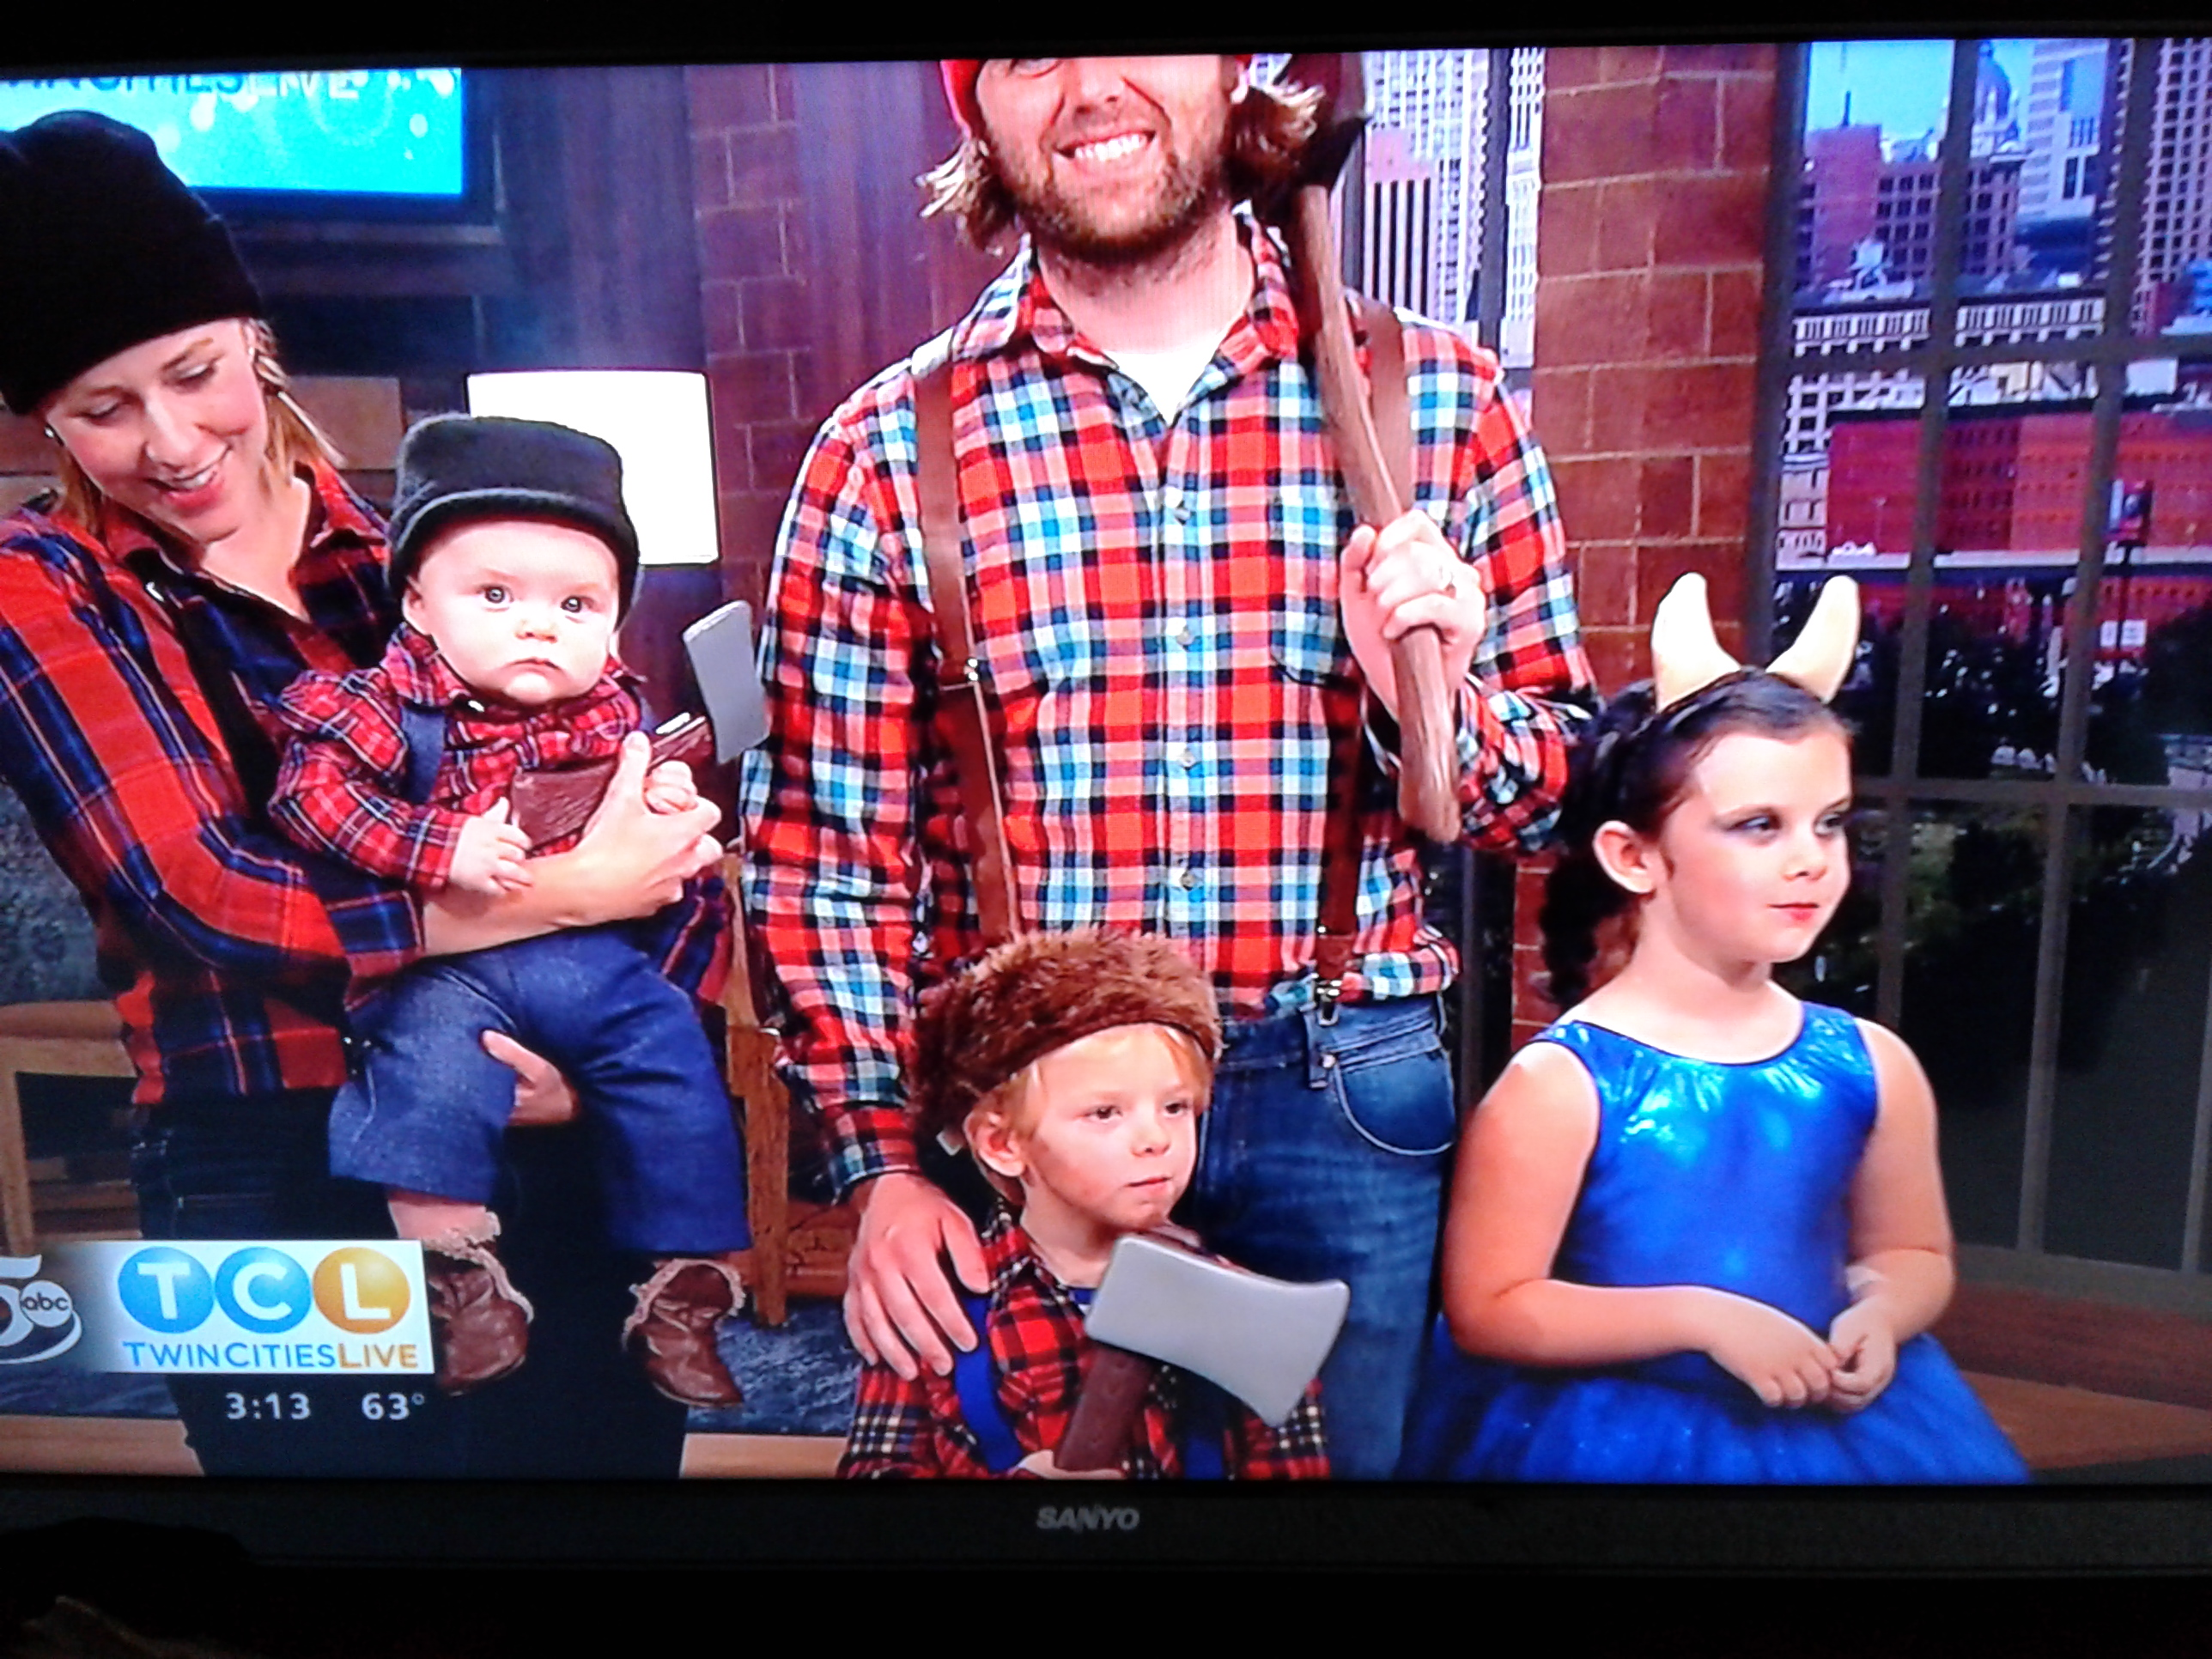 paul babe more than a minnesota legend paul bunyan family halloween costumes